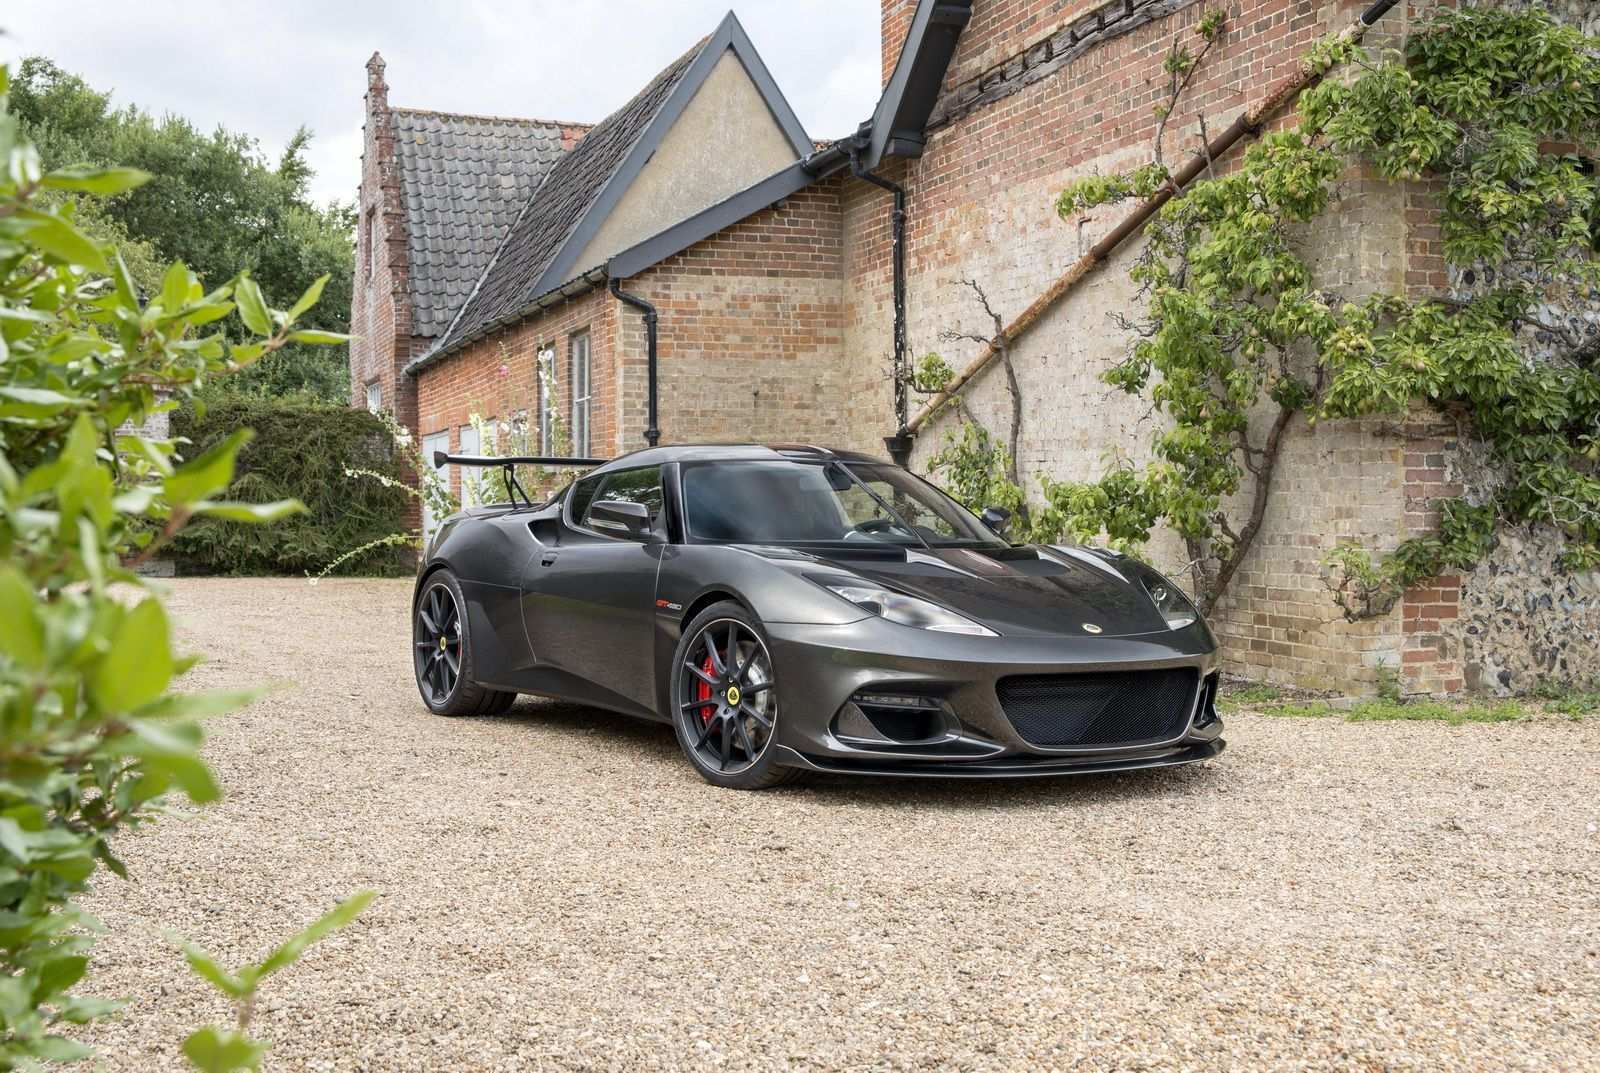 71 A 2020 Lotus Evora Review And Release Date